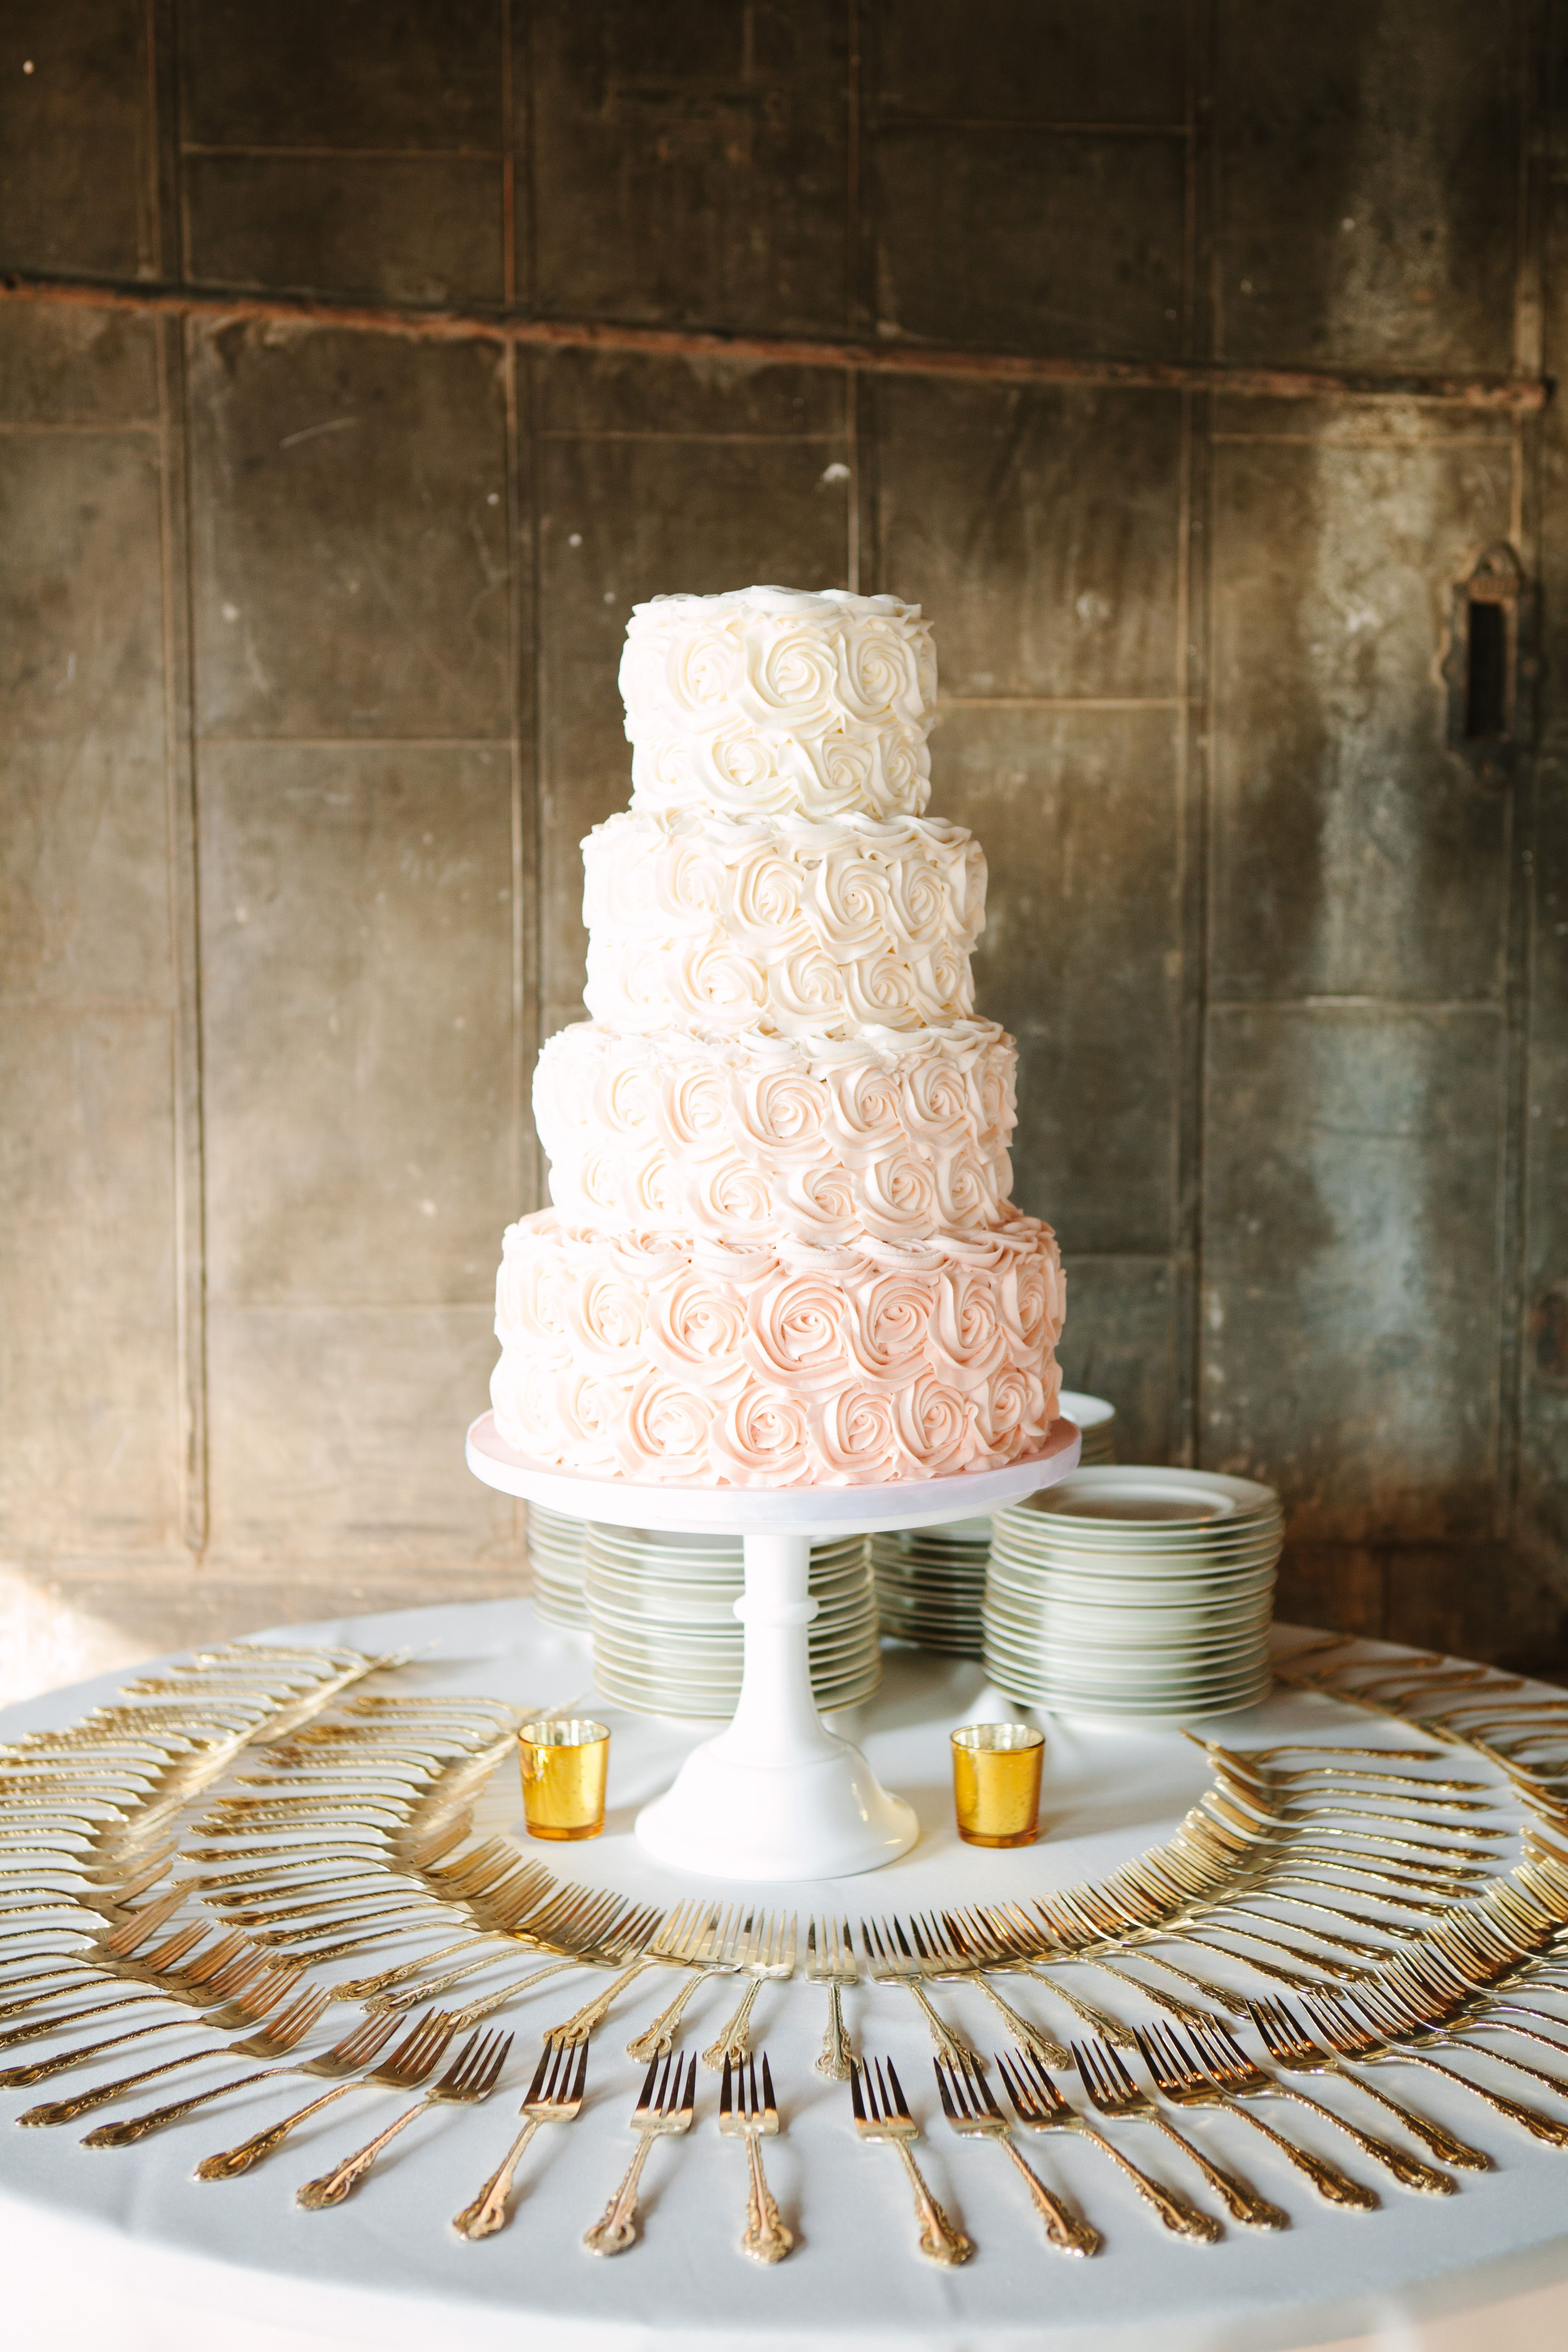 Cute White Wedding Cake Recipe Tall Country Wedding Cake Ideas Square Wedding Cake Pool Steps Wedding Dress Cupcake Cake Young Owl Wedding Cake Toppers GrayCakes For Weddings Design W 0813 | Butter Cream Wedding Cake | 10"|3695|5542|?|0fd90e4ce5accda47772686825421f8b|False|UNLIKELY|0.3262799382209778